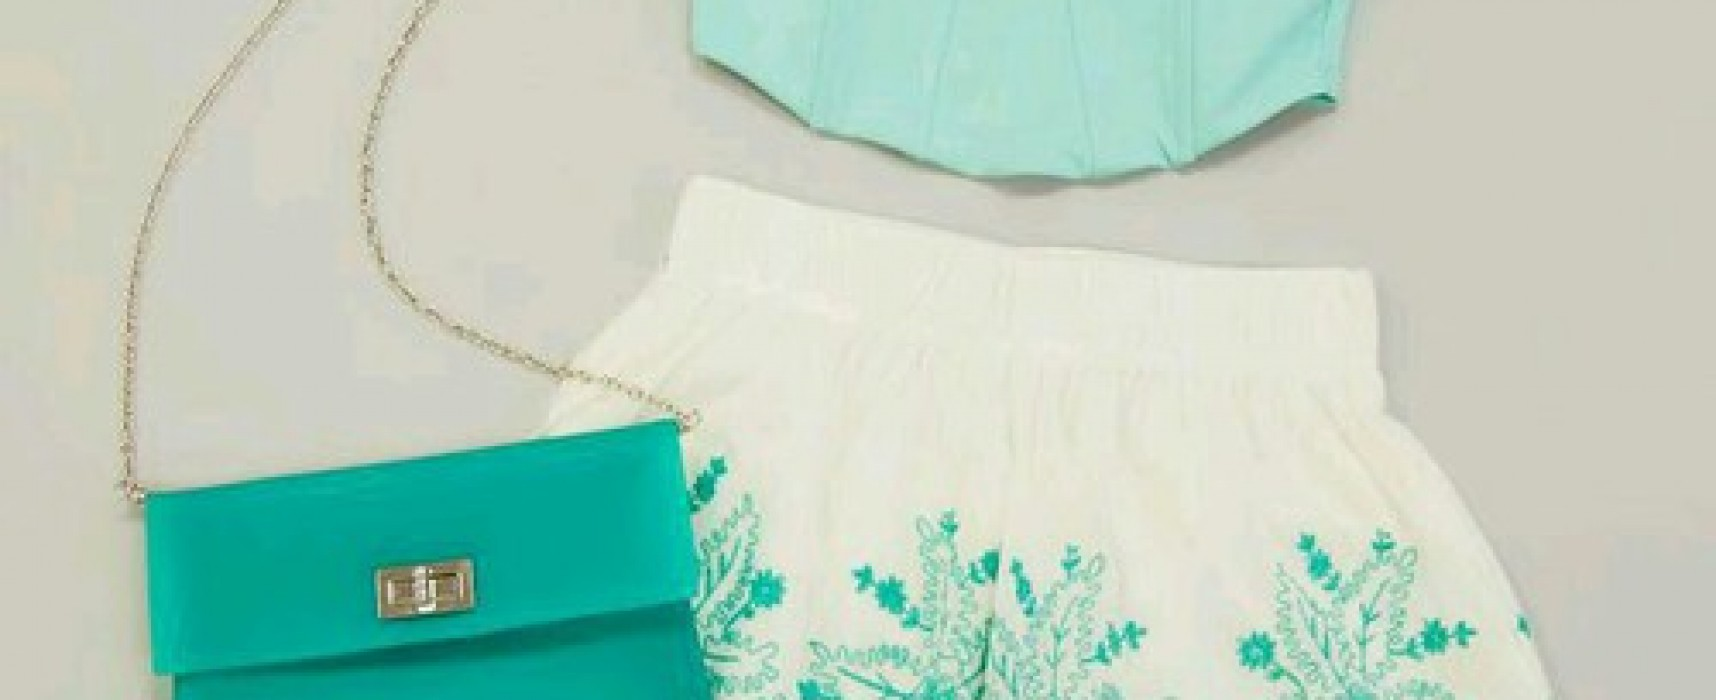 Clothing colors spring-summer 2015